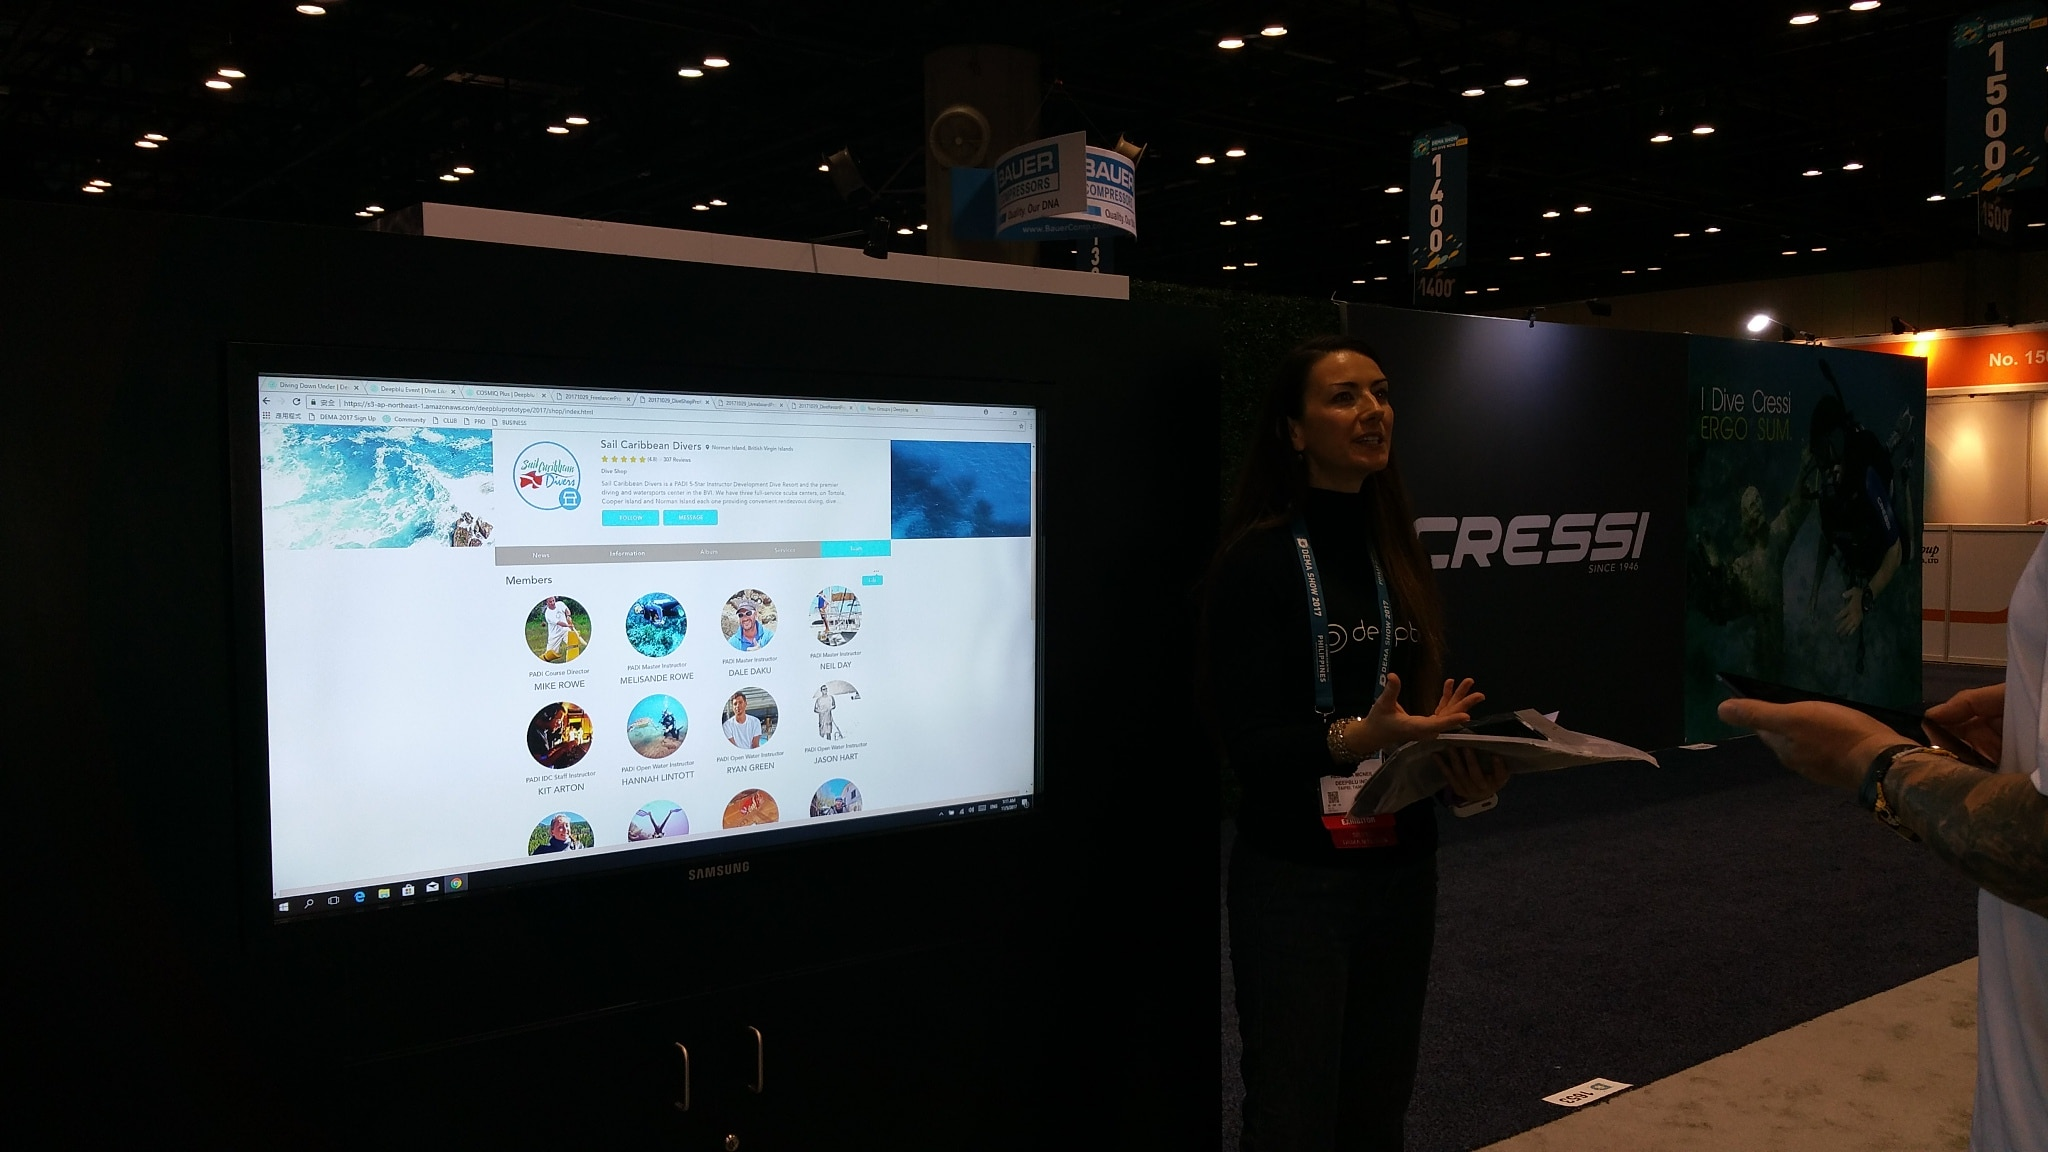 Interacting with the Deepblu platform in real time at DEMA 2017